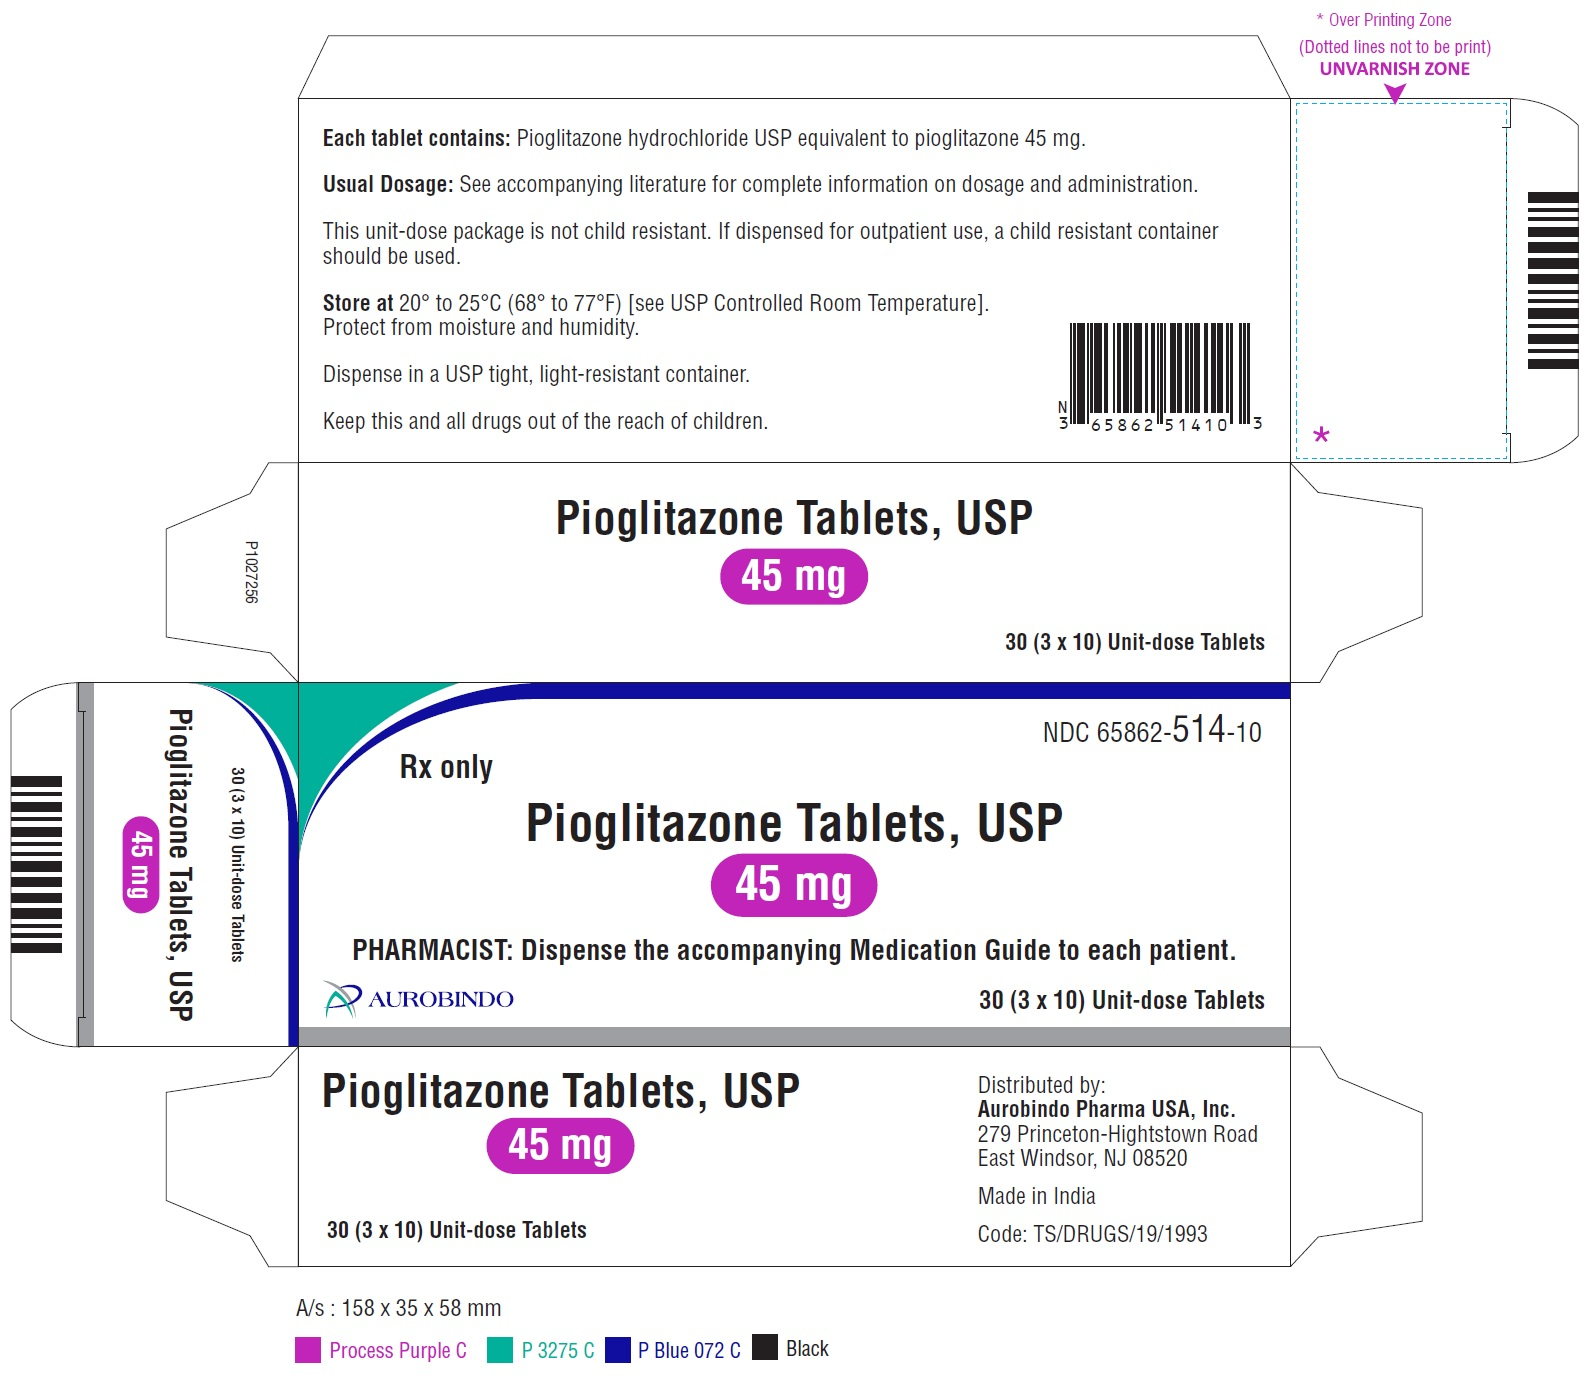 PACKAGE LABEL-PRINCIPAL DISPLAY PANEL - 45 mg Blister Carton (3 x 10 Unit-dose)